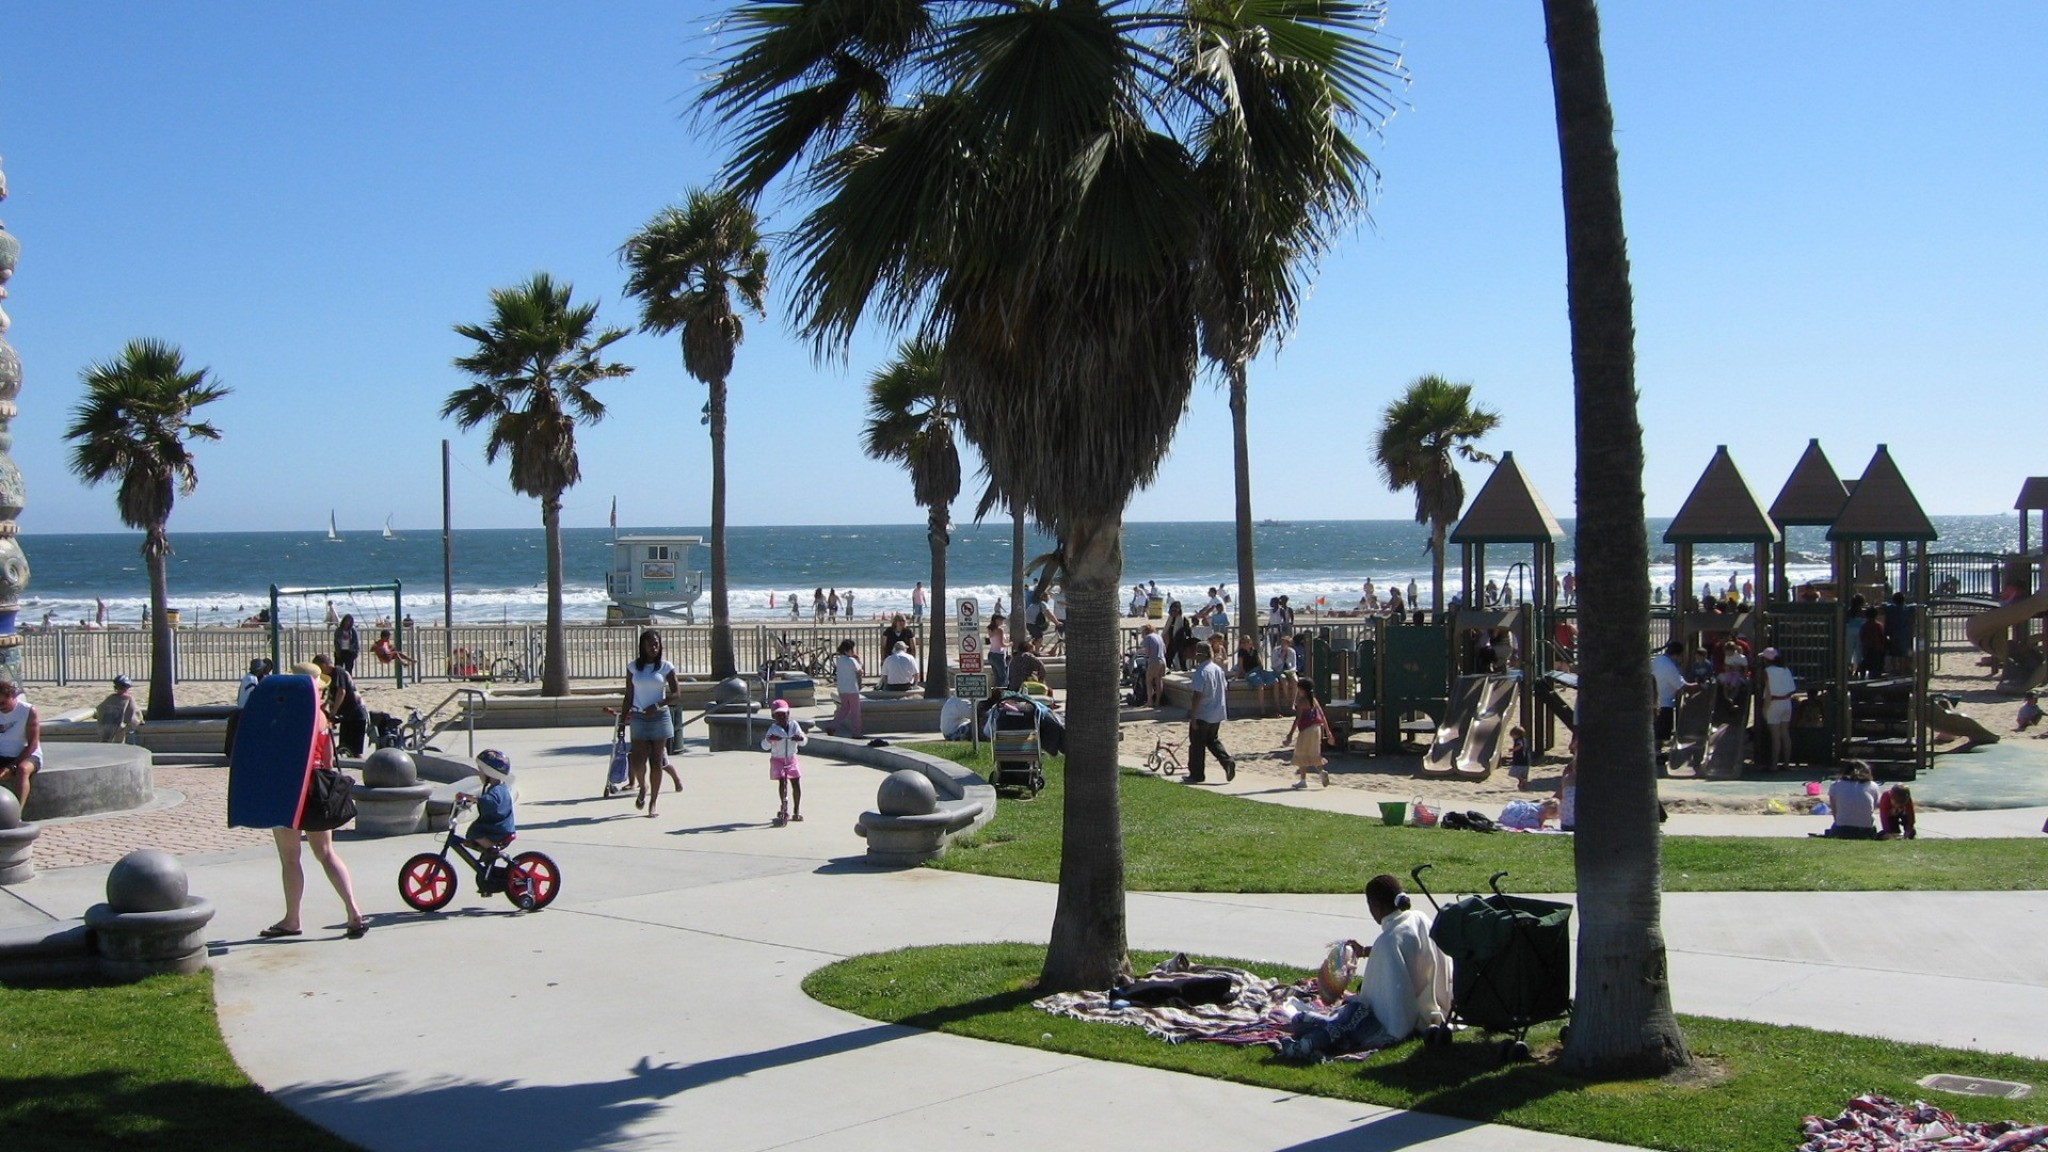 Venice beach los angeles united states    online HD Wallpaper